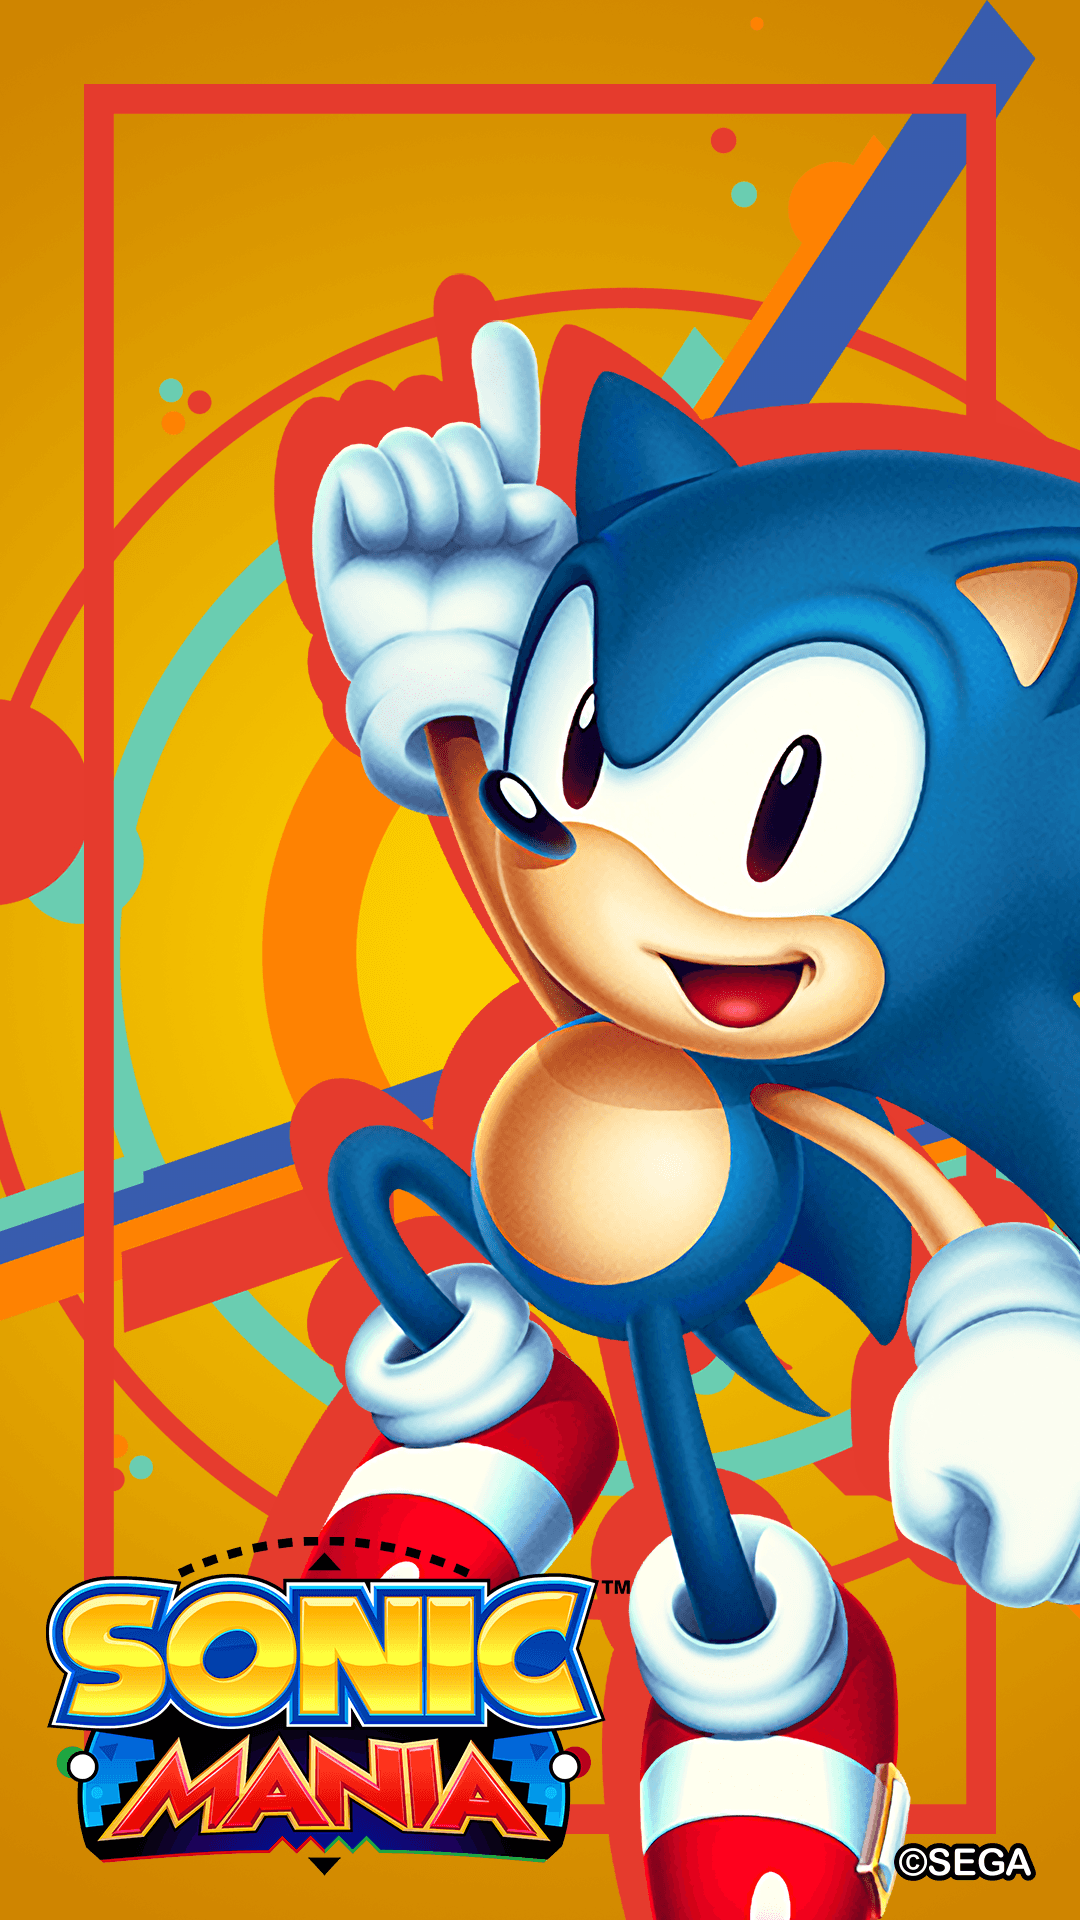 Sonic Mania Android Wallpapers - Wallpaper Cave